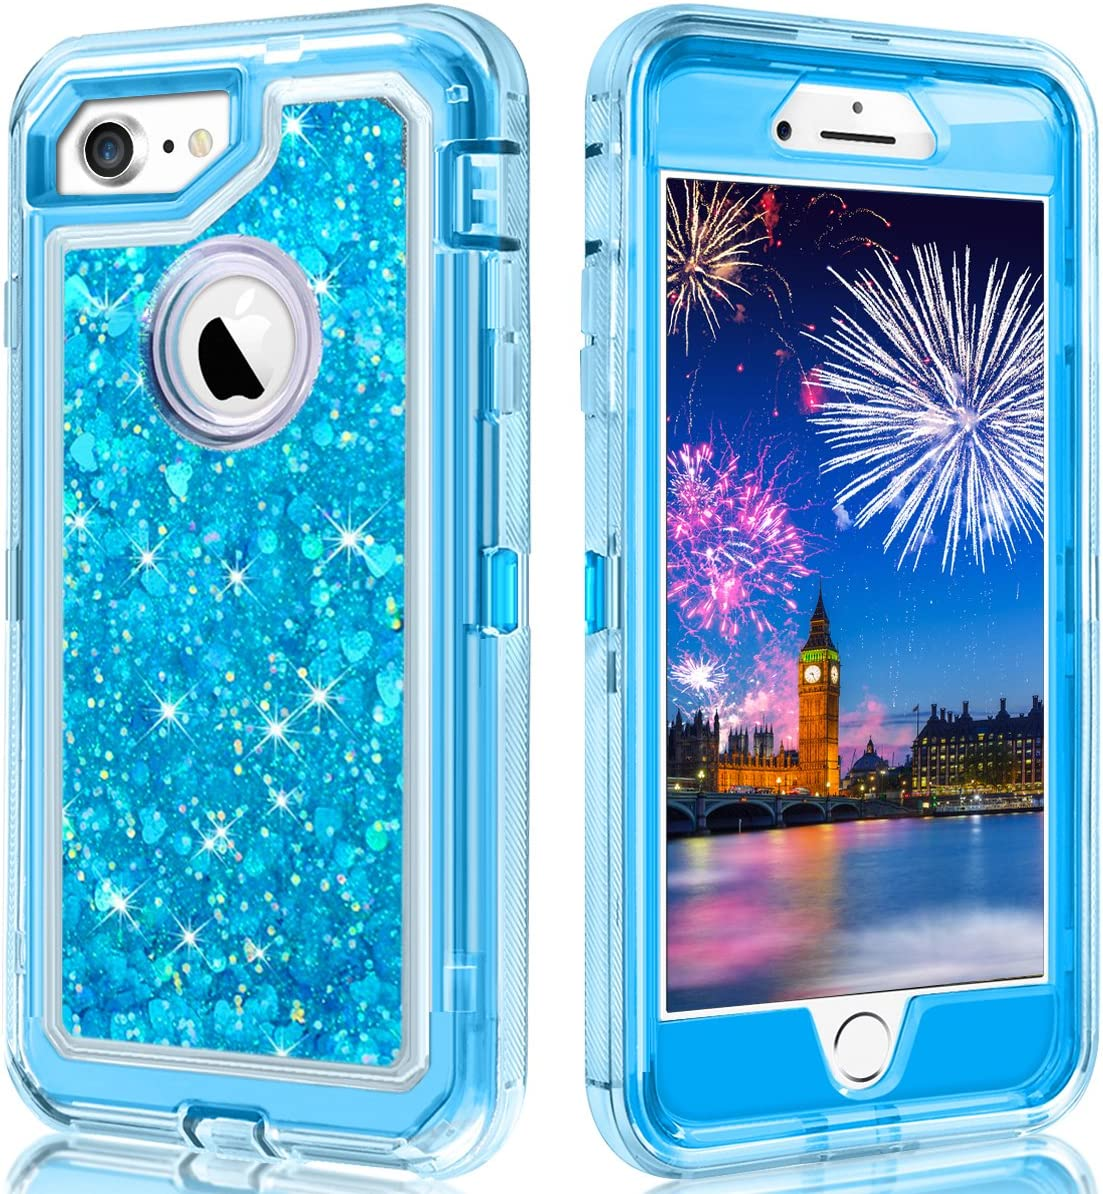 WOLLONY for iPhone SE2 Case,iPhone 8 Case,iPhone 7 Case,360 Full Body Shockproof Liquid Glitter Quicksand Bling Heavy Duty Hard Bumper Non-Slip Soft Transparent Protective for iPhone SE2 8 7 6 Blue